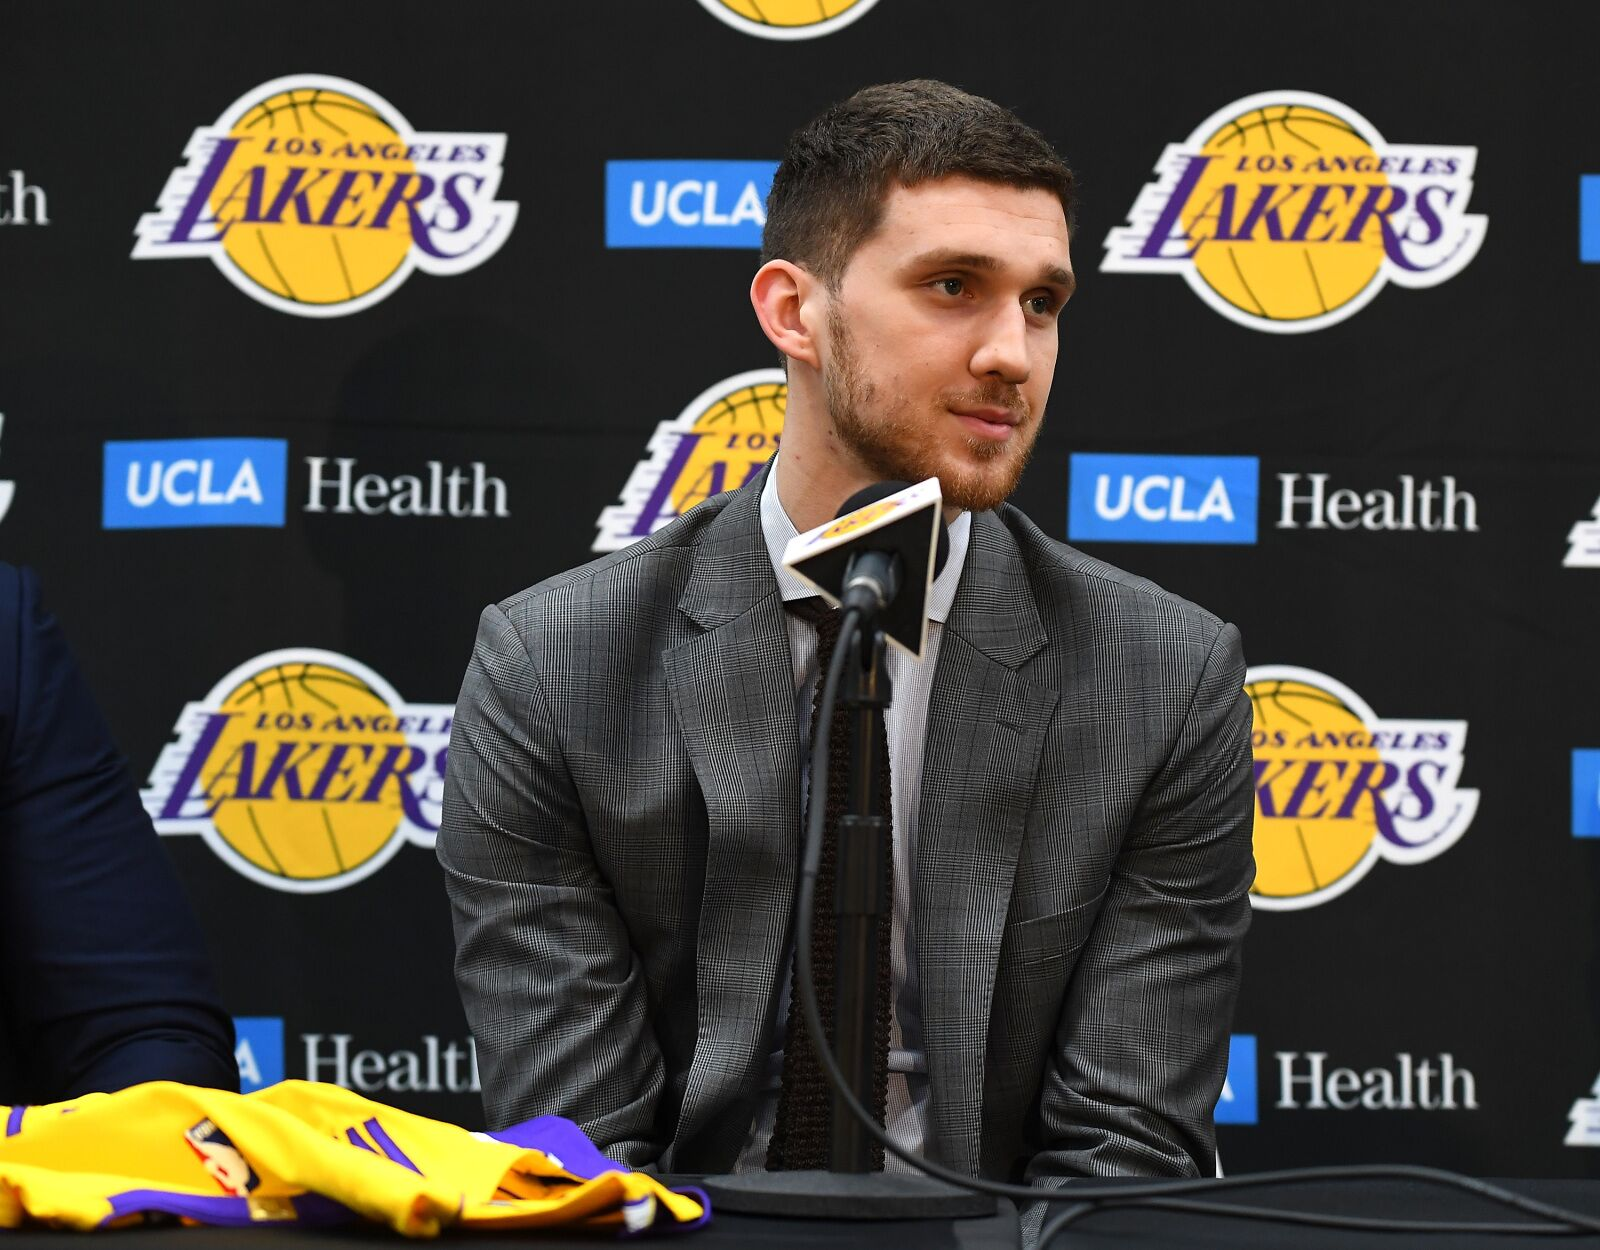 262a77c6e2d Los Angeles Lakers: Players that should have been drafted in the first